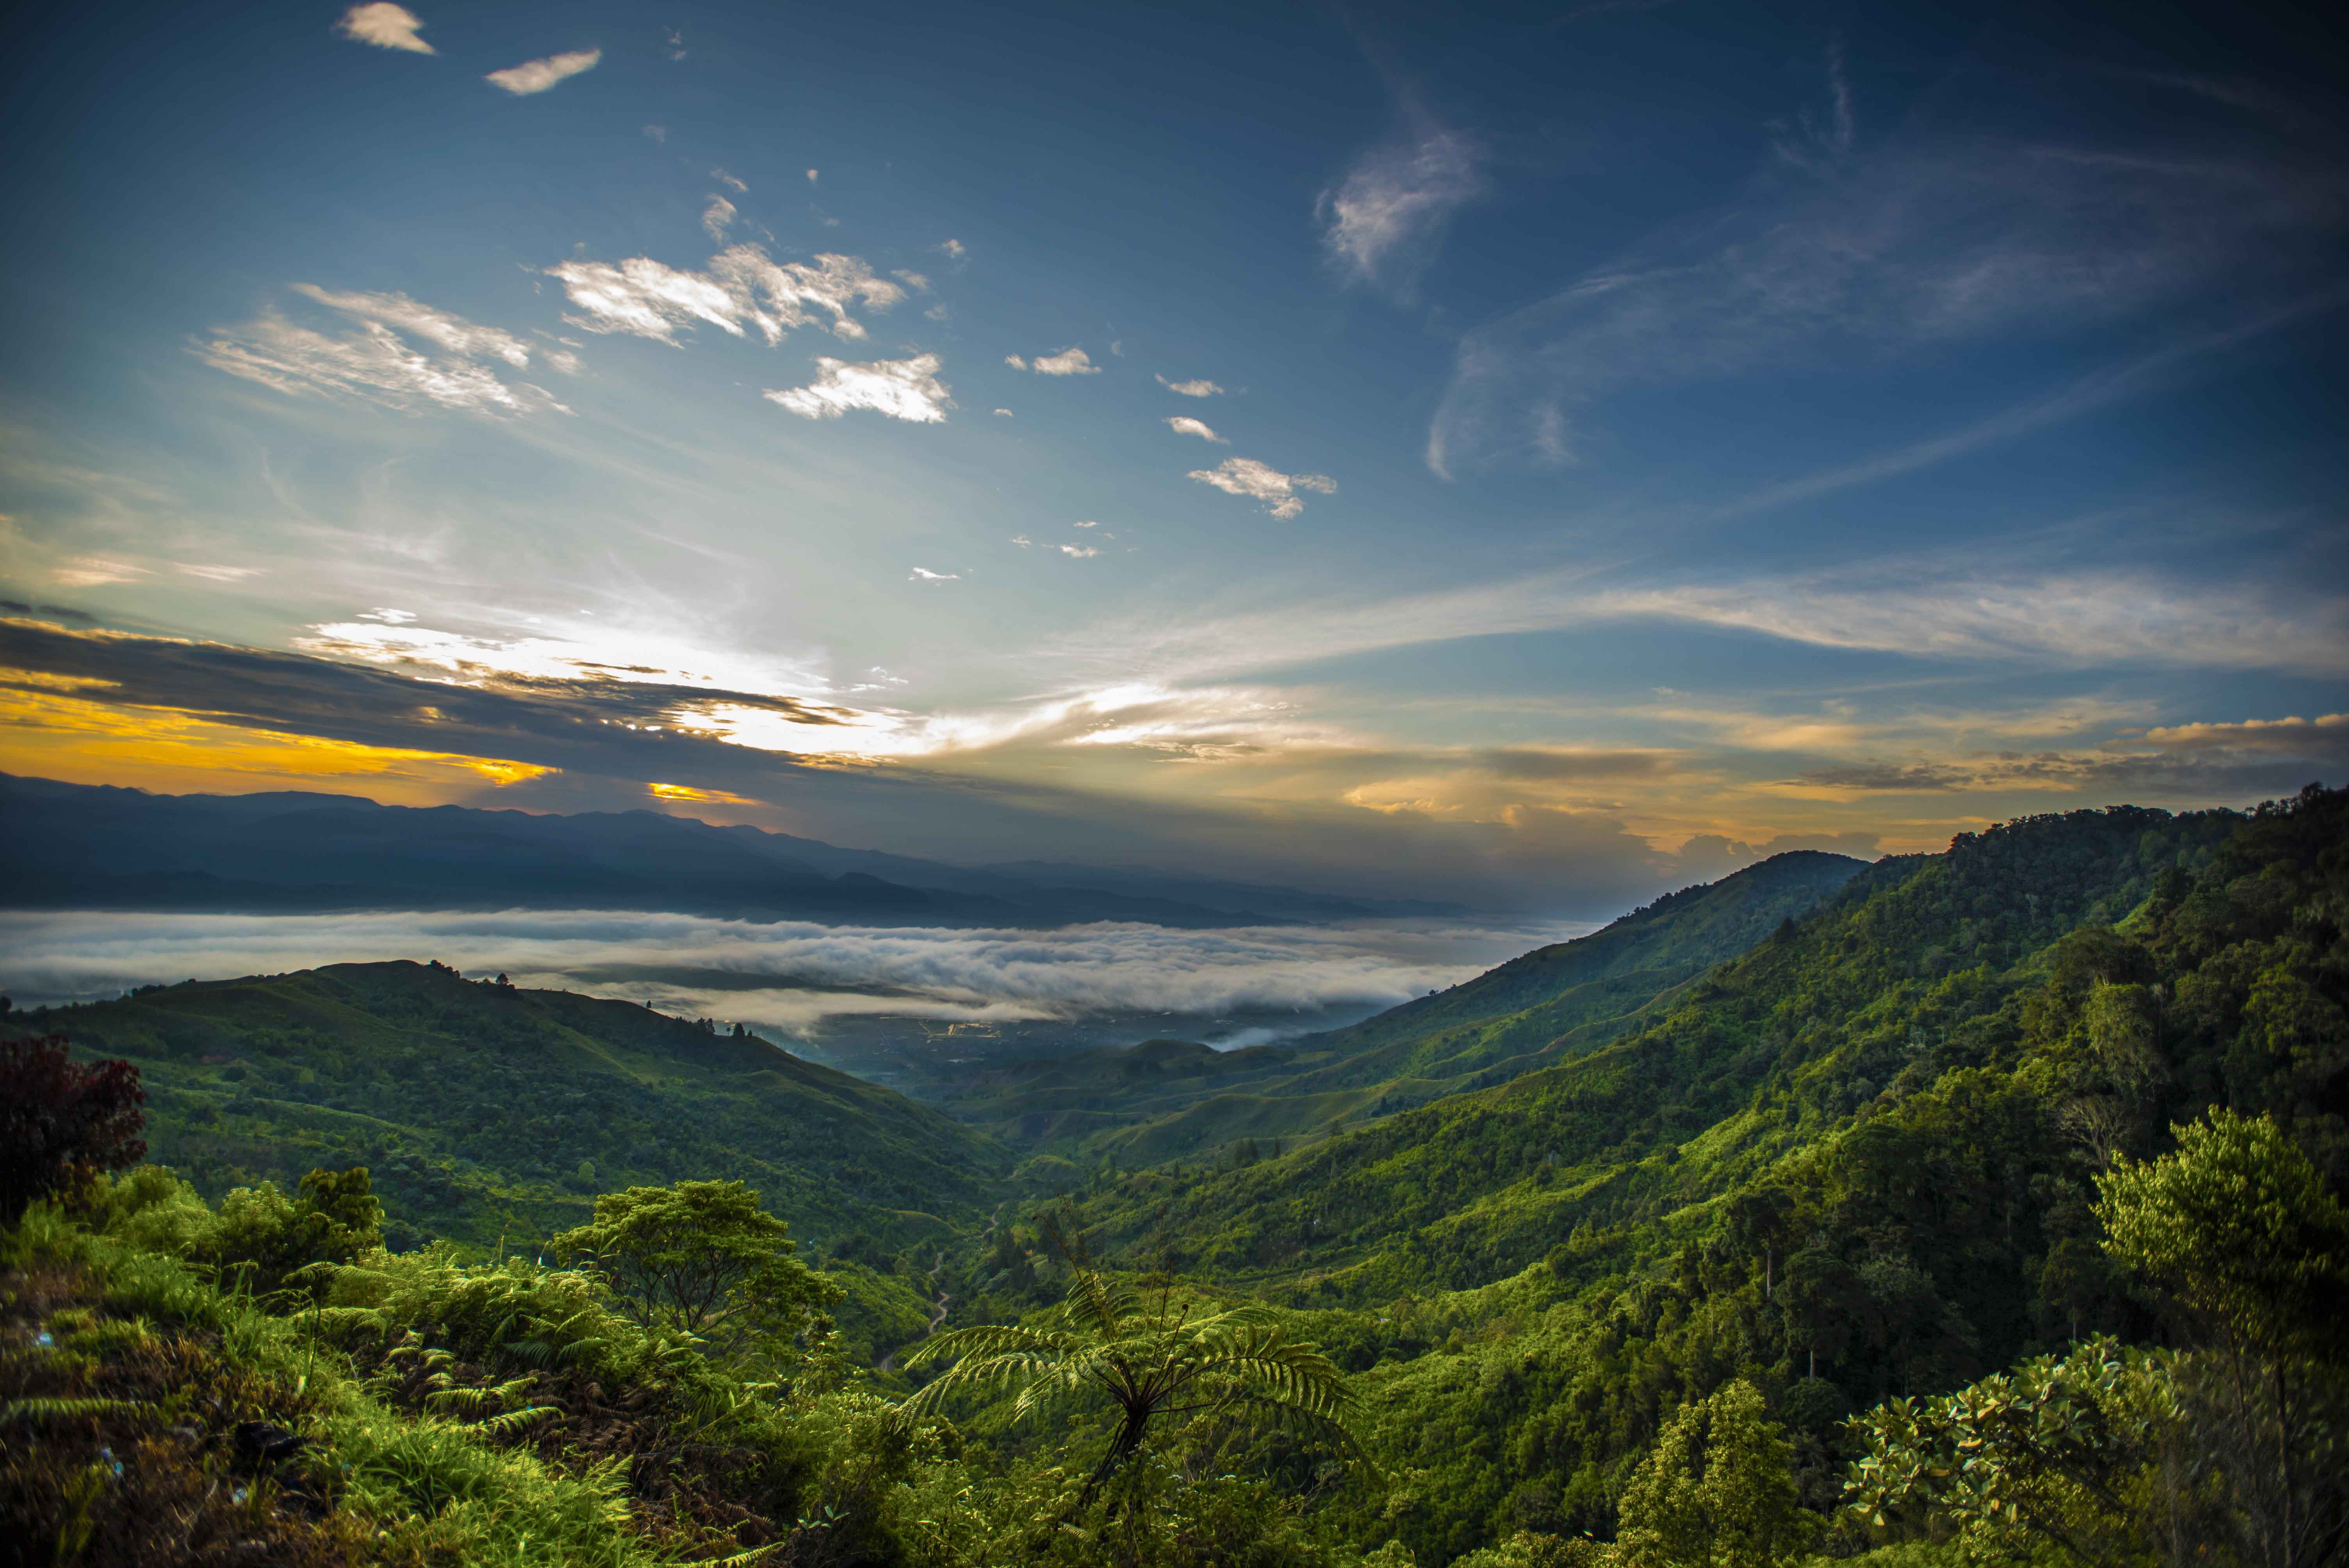 Bukit Barisan The Tropical Rainforest Heritage Of Sumatra Travel Magazine For A Curious Contemporary Reader